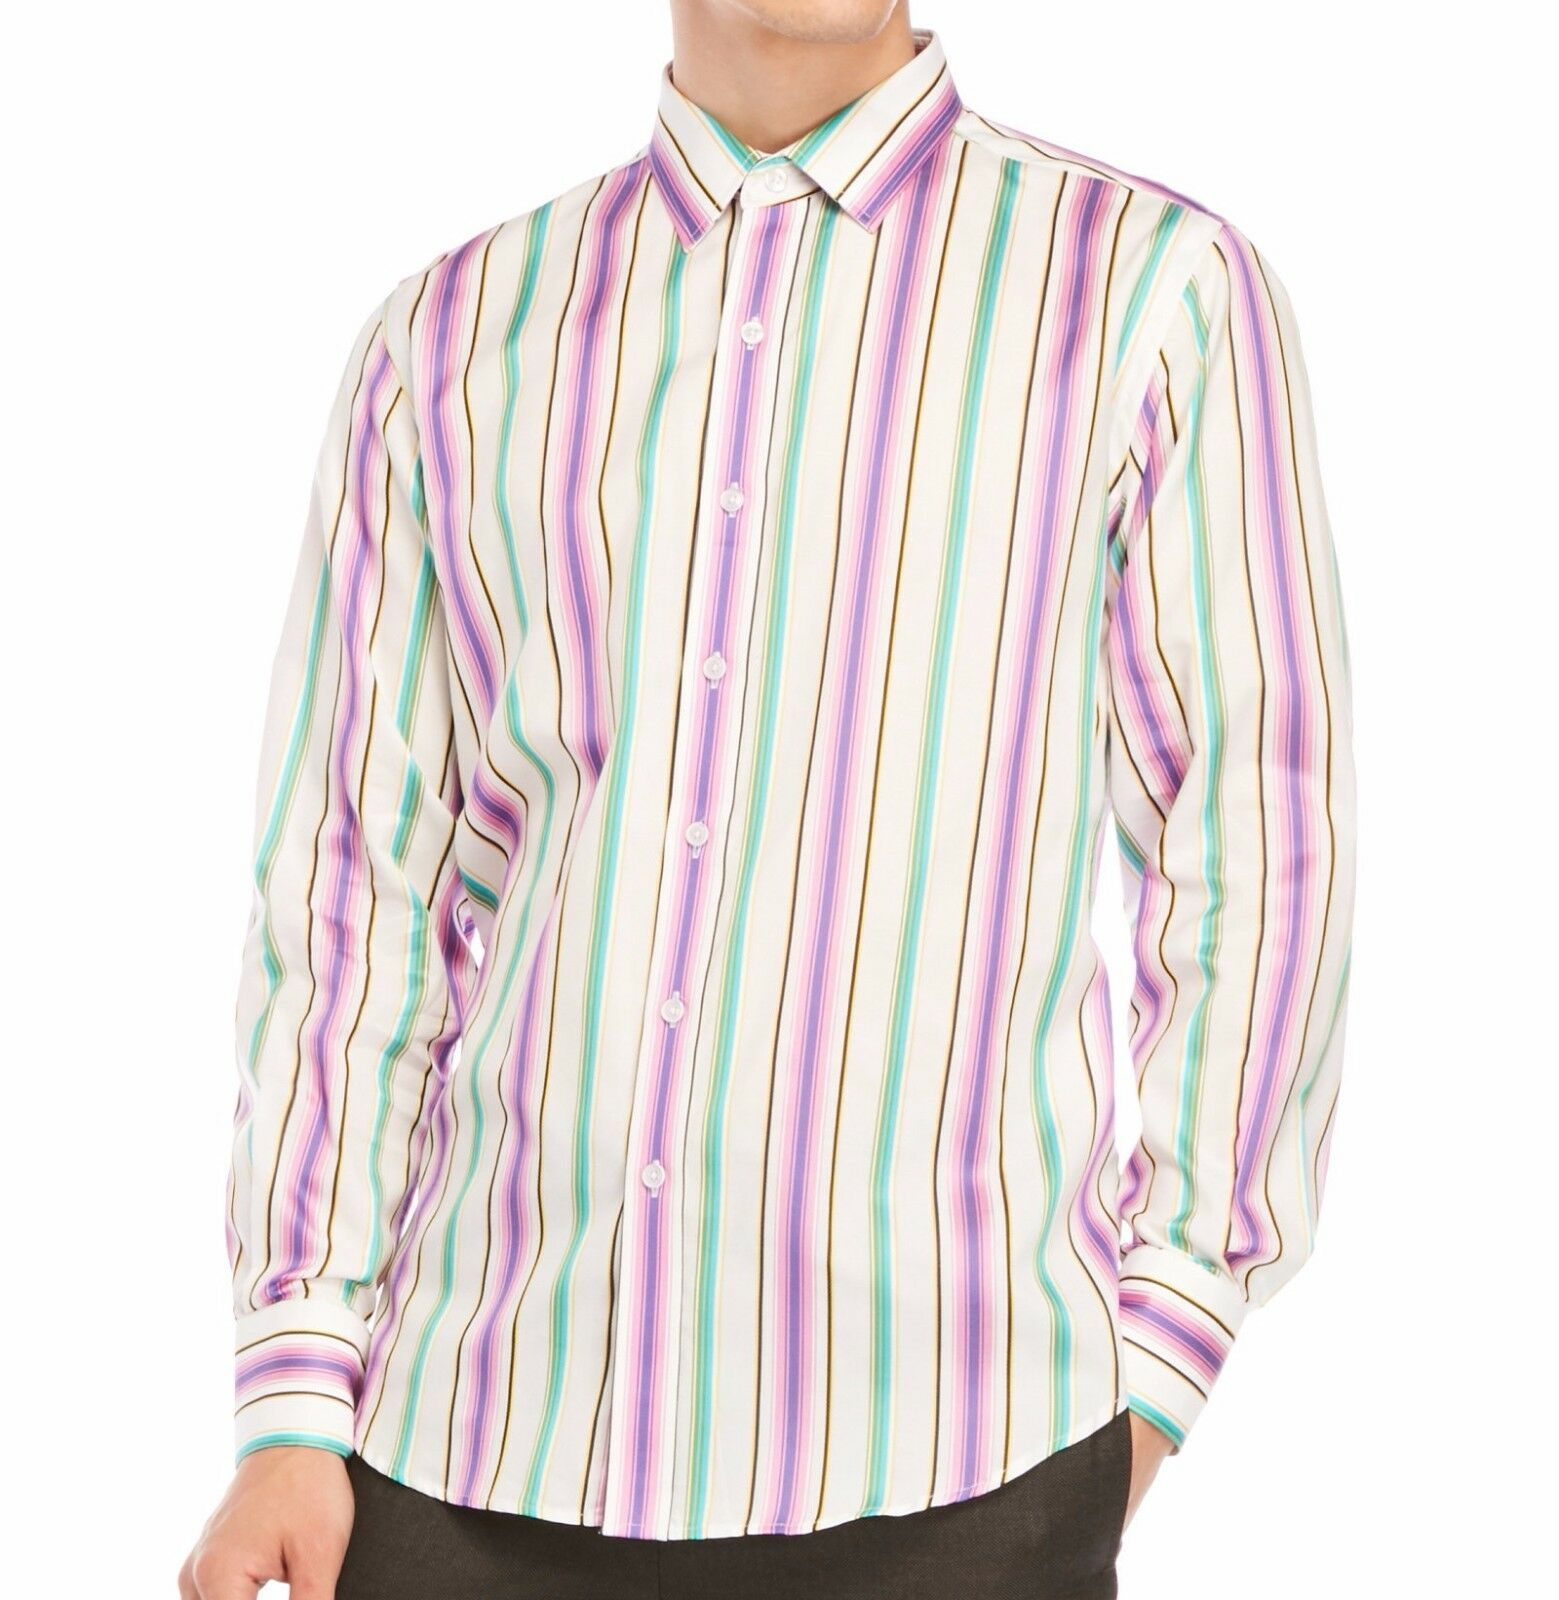 a811732a083 Robert Graham Men s Long Sleeve Sleeve Sleeve Chenworth Striped Button  Front Shirt Purple c5cdb8